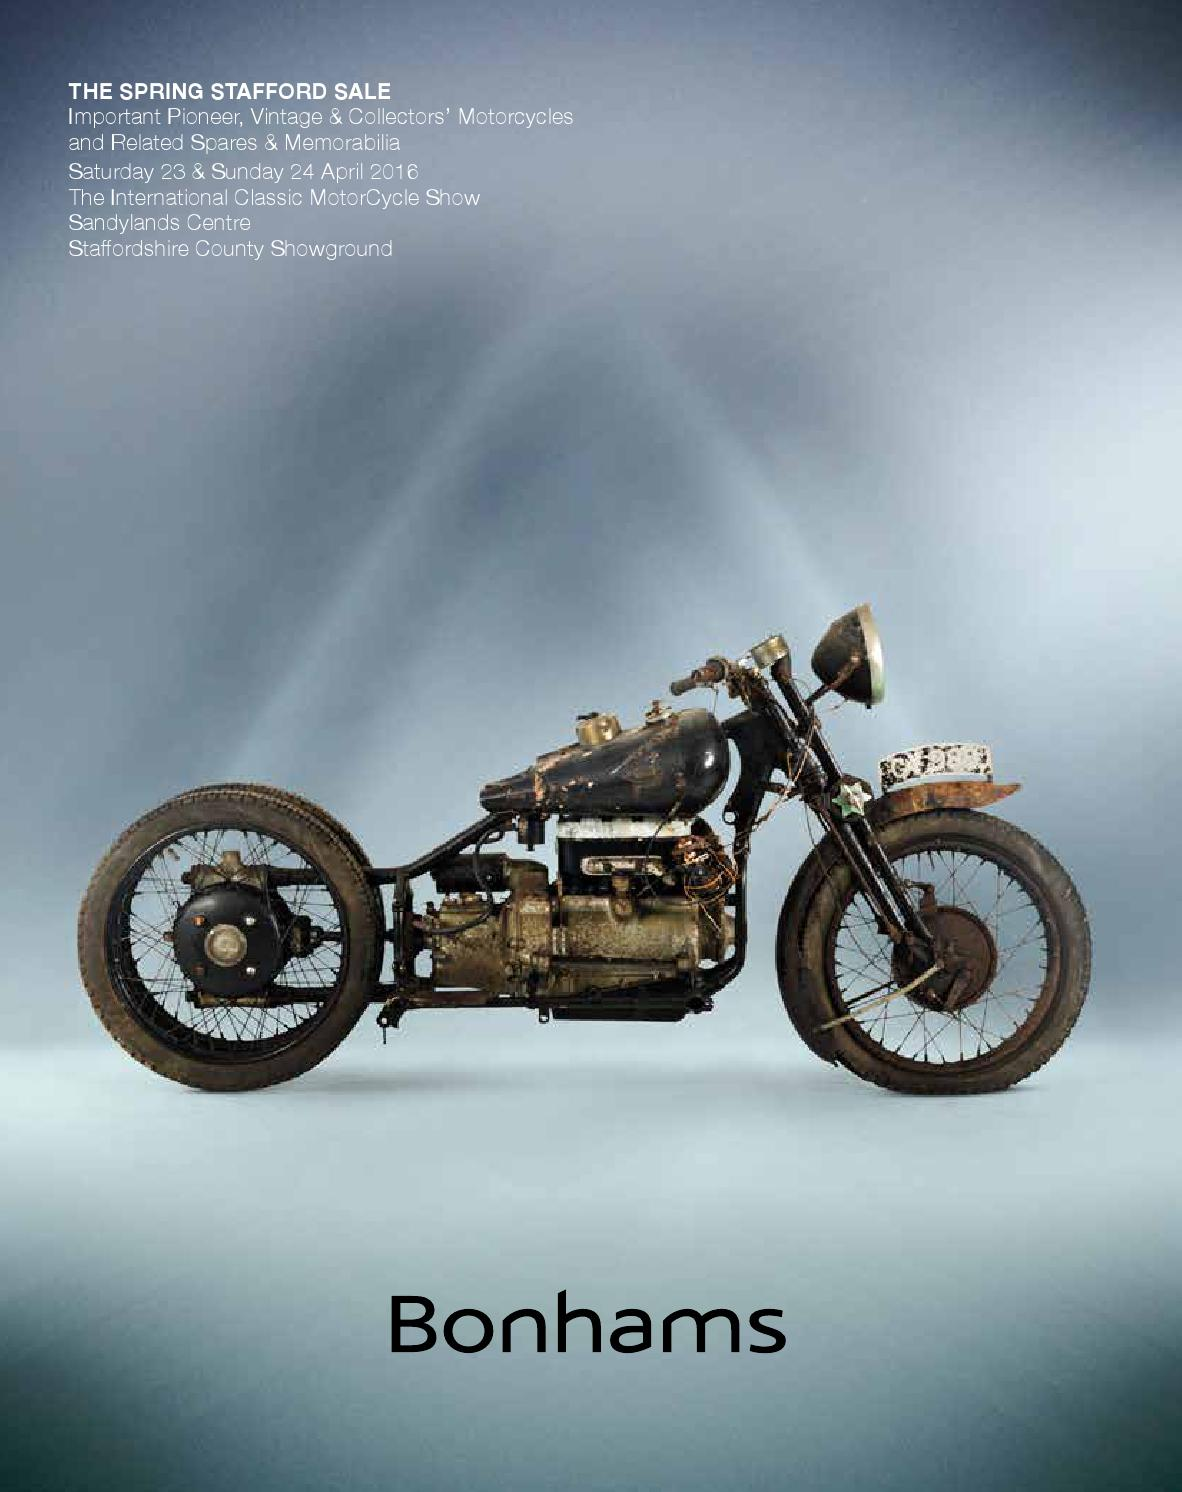 Bonhams Spring Stafford Sale By Mortons Media Group Ltd Issuu Wiring Harnesses For The Moto Guzzi 850 T3 California